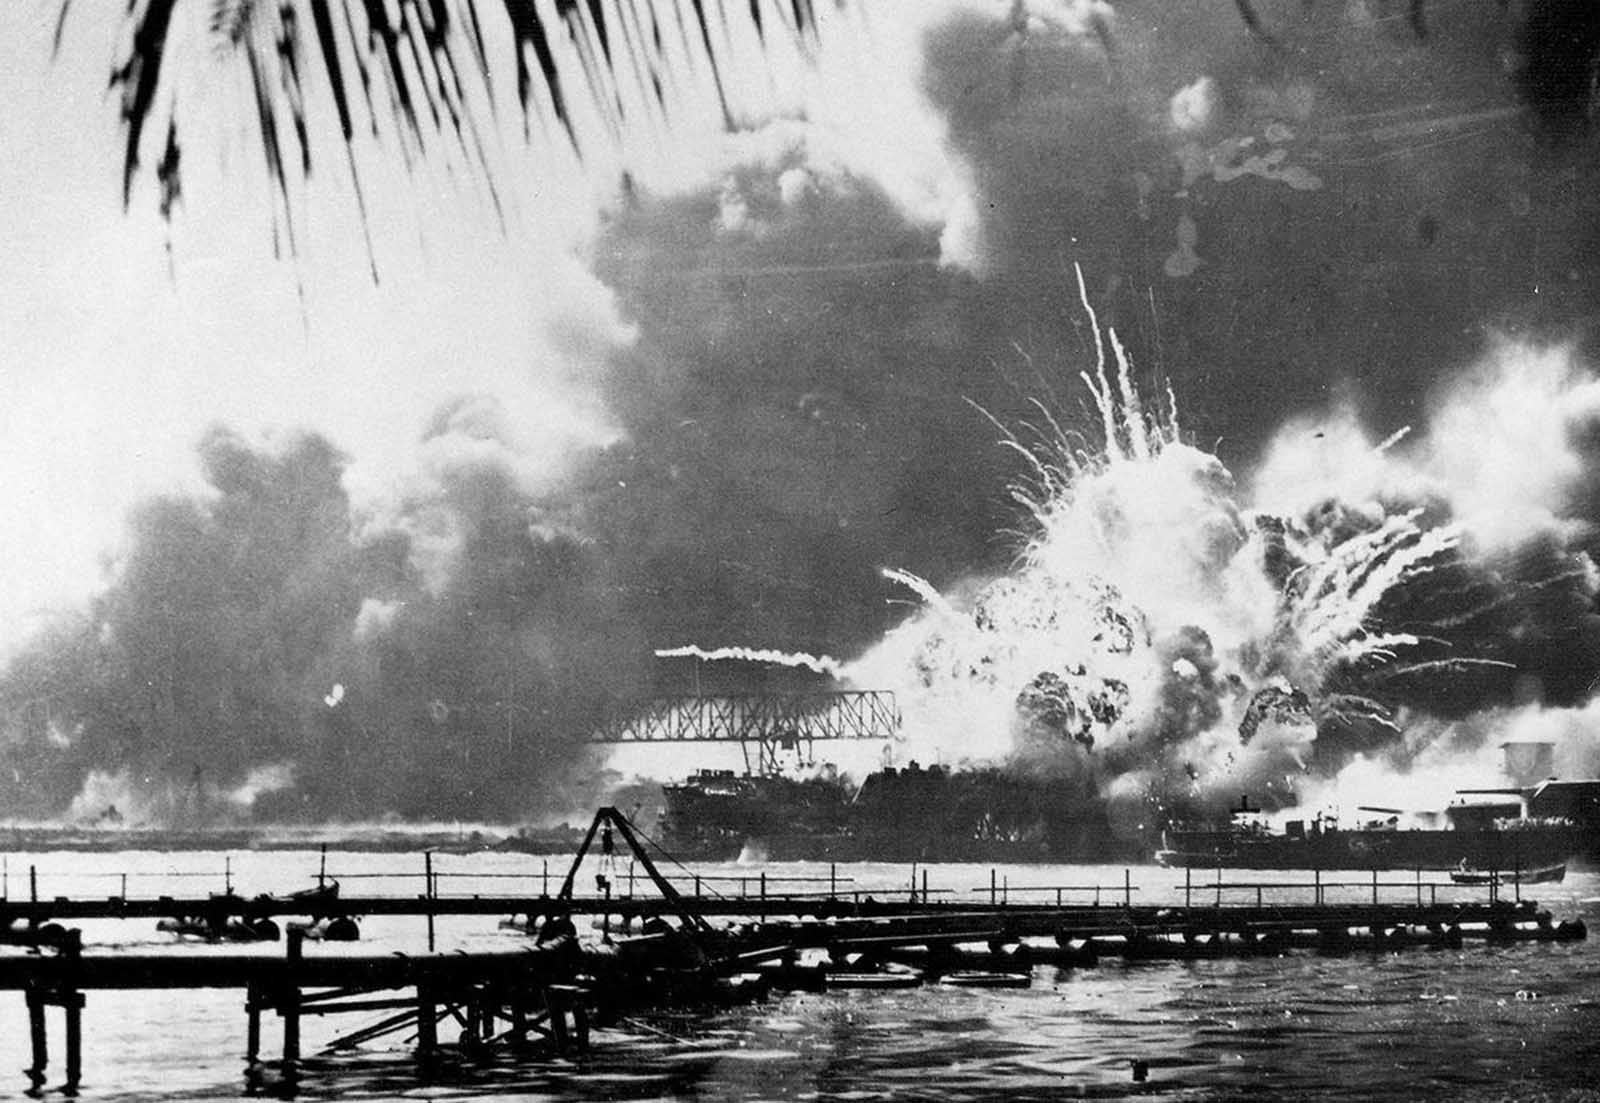 The USS Shaw explodes after being hit by bombs during the Japanese surprise attack on Pearl Harbor, Hawaii, in this December 7, 1941 photo.